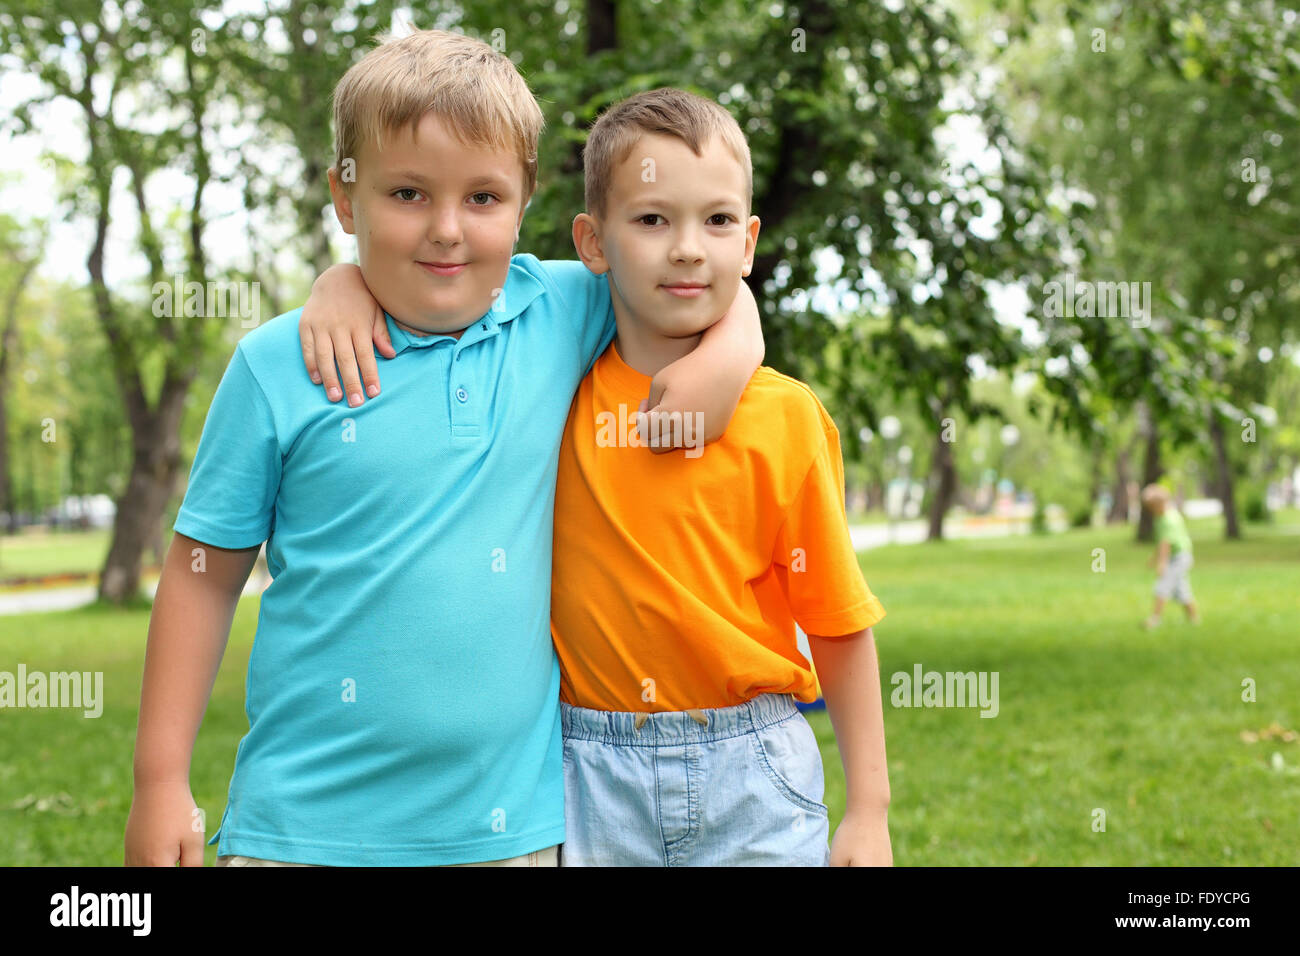 two boys standing next to each other in the summer park stock photo